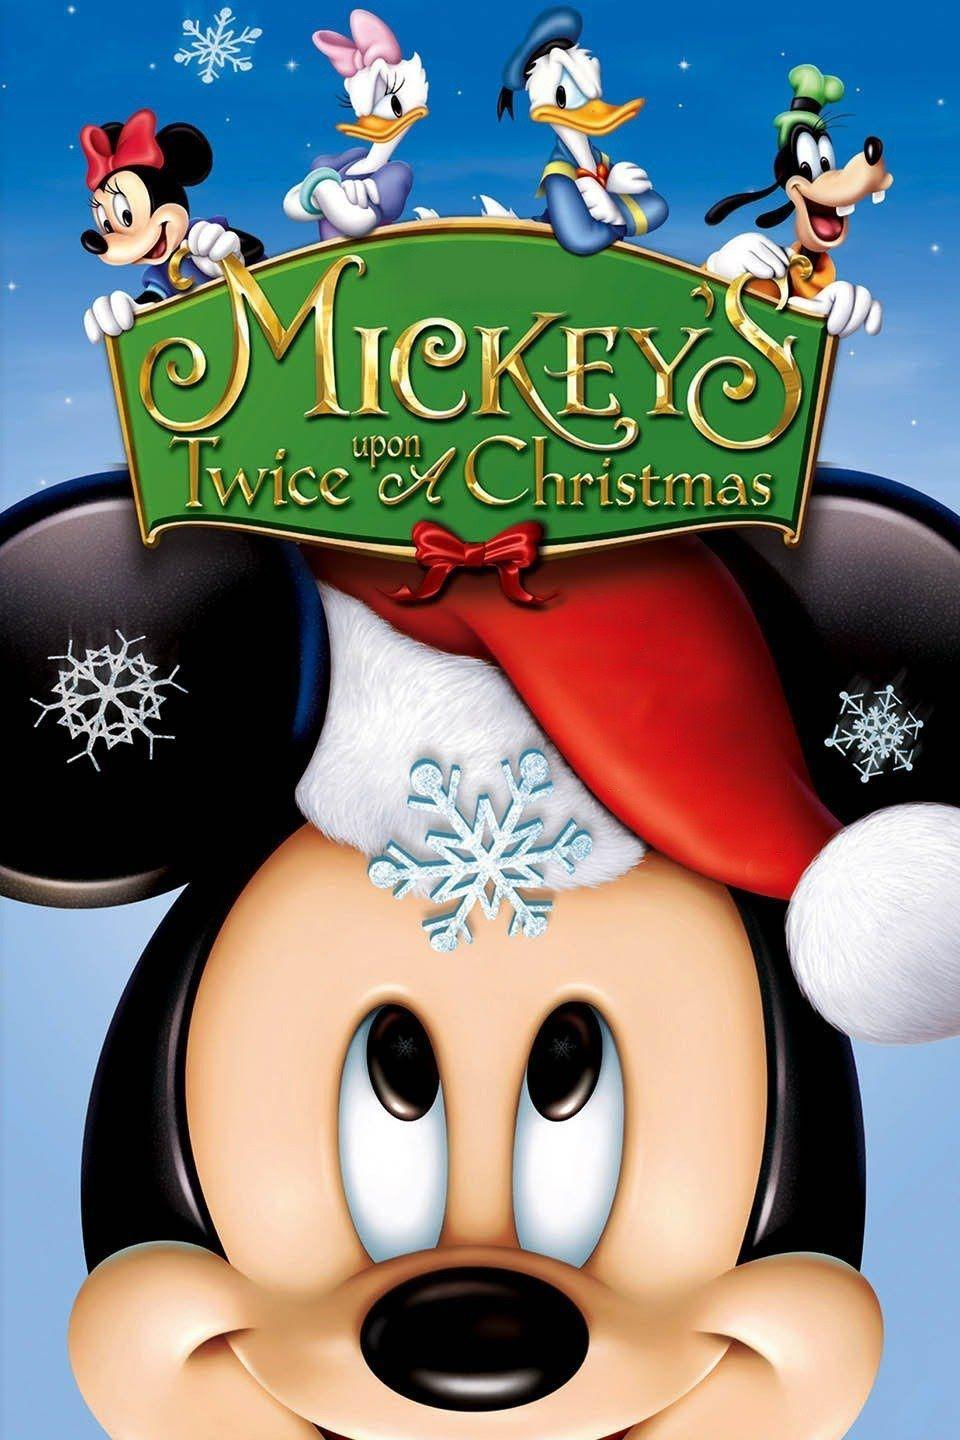 """<p><a class=""""link rapid-noclick-resp"""" href=""""https://go.redirectingat.com?id=74968X1596630&url=https%3A%2F%2Fwww.disneyplus.com%2Fmovies%2Fmickeys-twice-upon-a-christmas%2F4RwFm3SJKgX4&sref=https%3A%2F%2Fwww.countryliving.com%2Flife%2Fentertainment%2Fg30083847%2Fchristmas-movies-disney-plus%2F"""" rel=""""nofollow noopener"""" target=""""_blank"""" data-ylk=""""slk:WATCH NOW"""">WATCH NOW</a></p><p>Join all your favorite animated friends—Mickey, Minnie, Donald, Pluto, and more—as they discover the true joys of Christmas. </p>"""